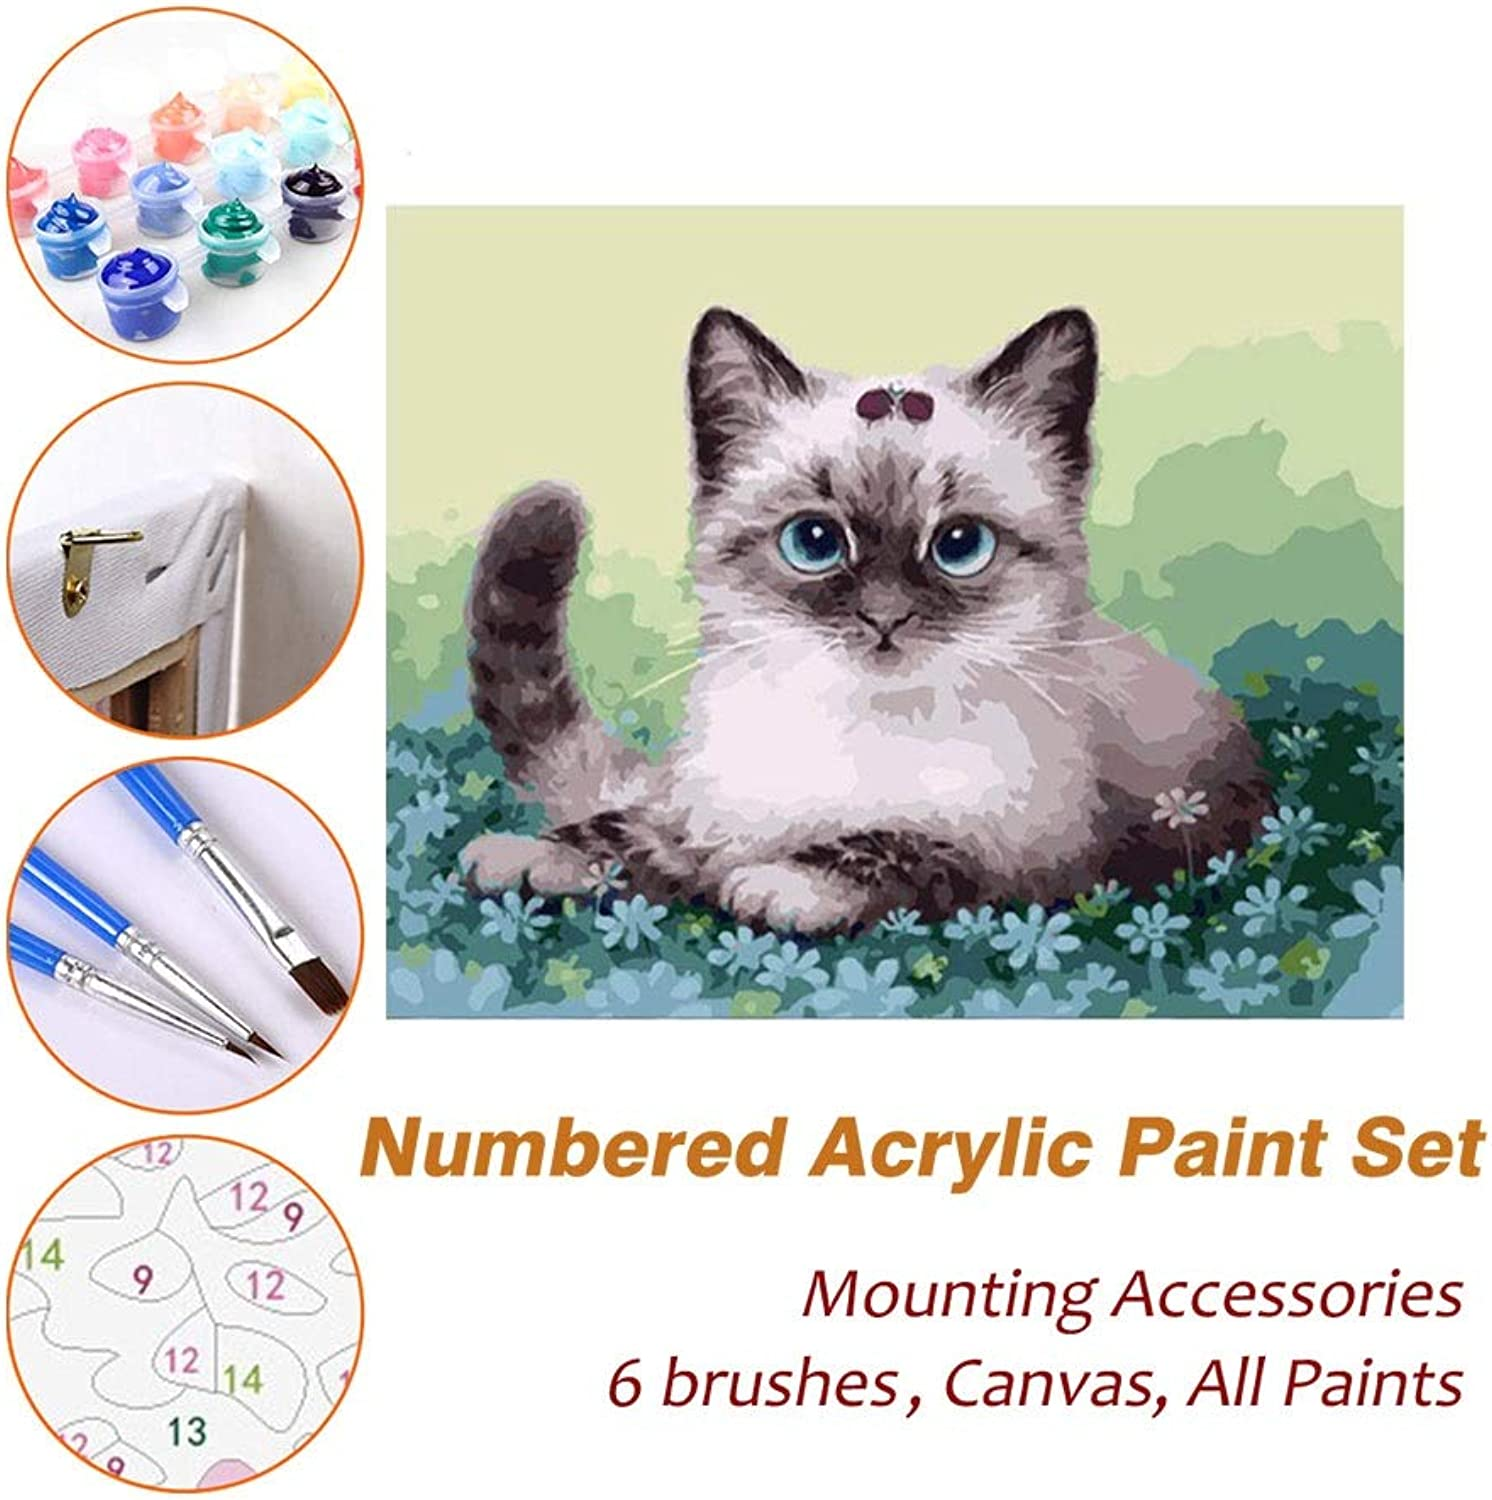 Puzzle House Paint Max Acrylic Oil Painting Paint By Numbers Kits Sets with Frame For Kids Adults Beginner Artist, The Cute Cat DIY Wall Art Picture Photography Brush Supplies 610